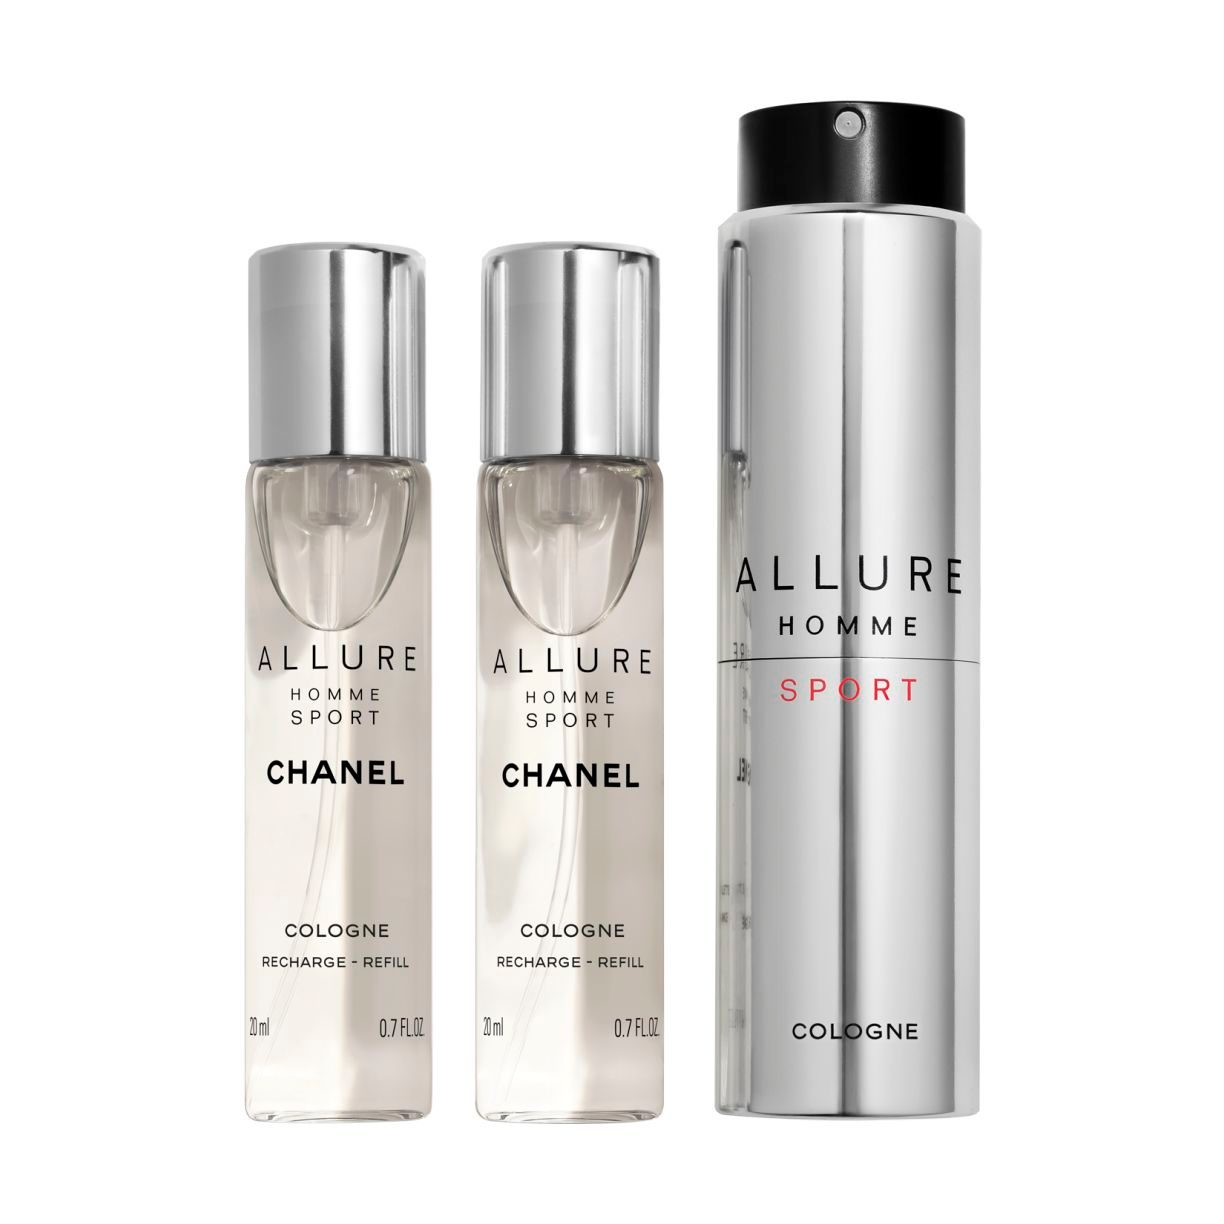 ALLURE HOMME SPORT COLOGNE REFILLABLE TRAVEL SPRAY 3 X 20ML